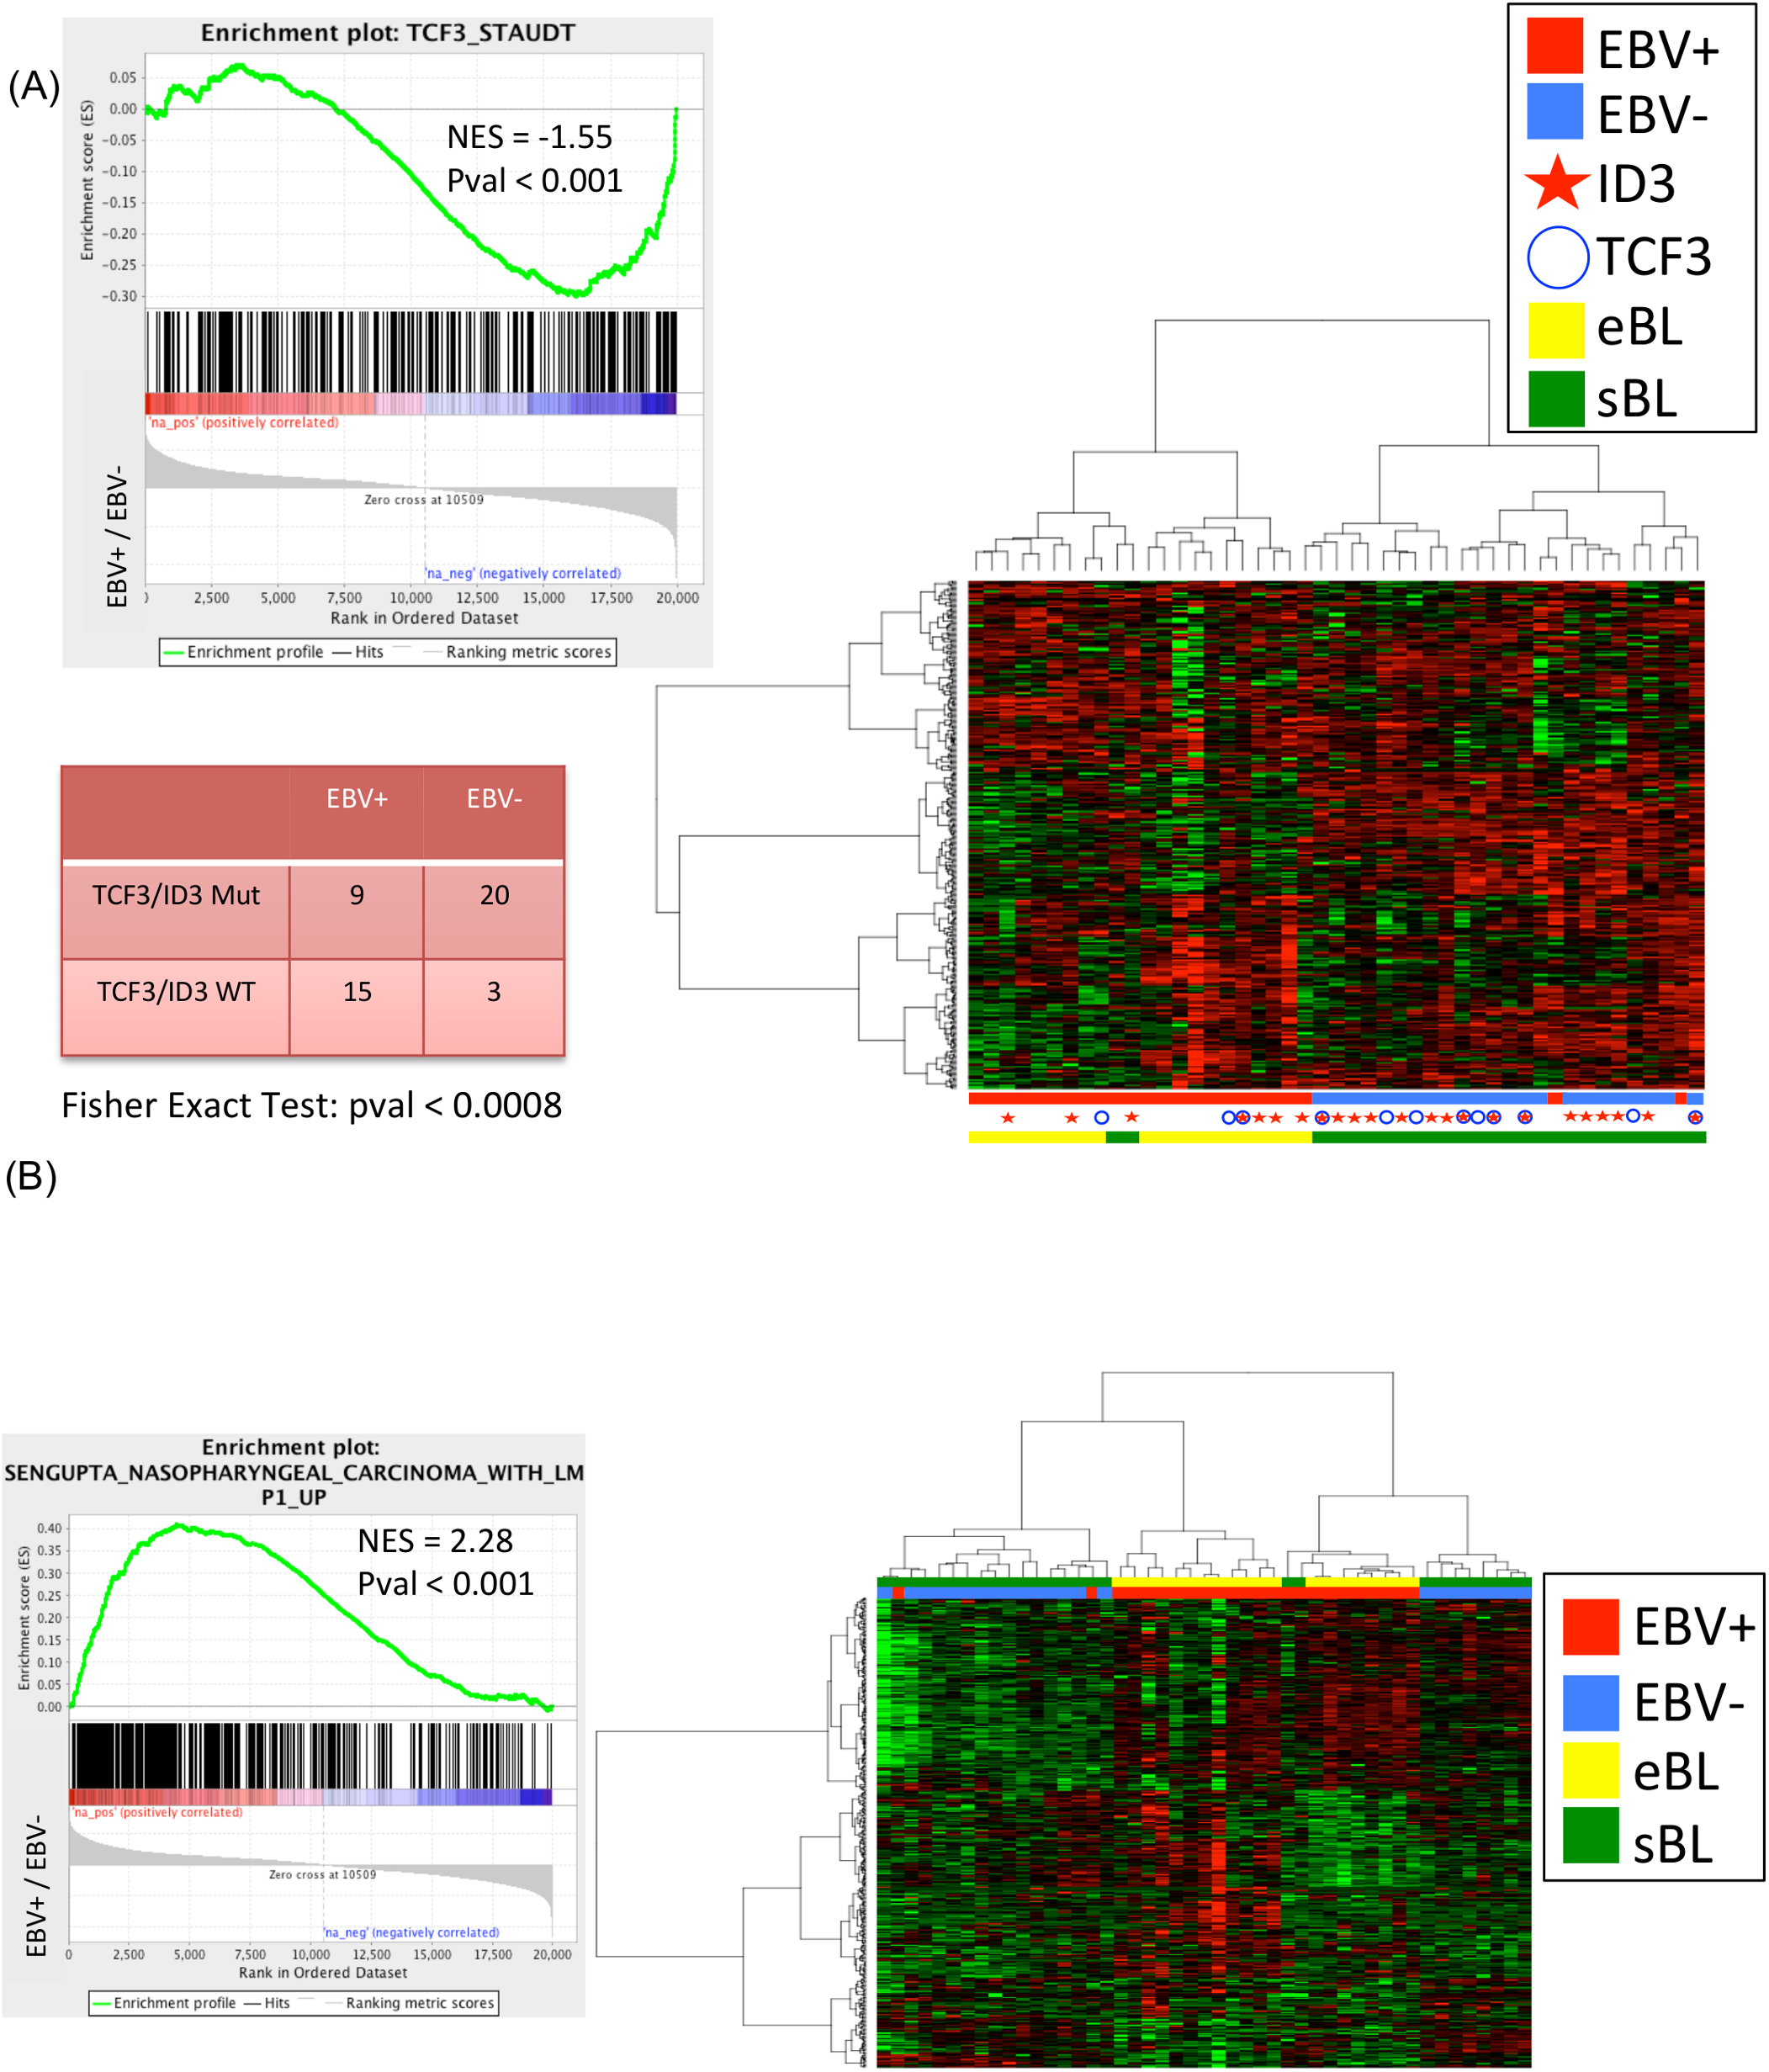 (A) the dendrogram classifies the samples into EBV-positive and EBV-negative BL independently on the specific subtype with an accuracy of 96% (45/47). (B) GSEA C2 analysis on genes differentially expressed between EBV-positive and EBV-negative cases detects a significant enrichment for the <i>LMP-1</i> gene set signature. GSEA: gene set enrichment analysis.